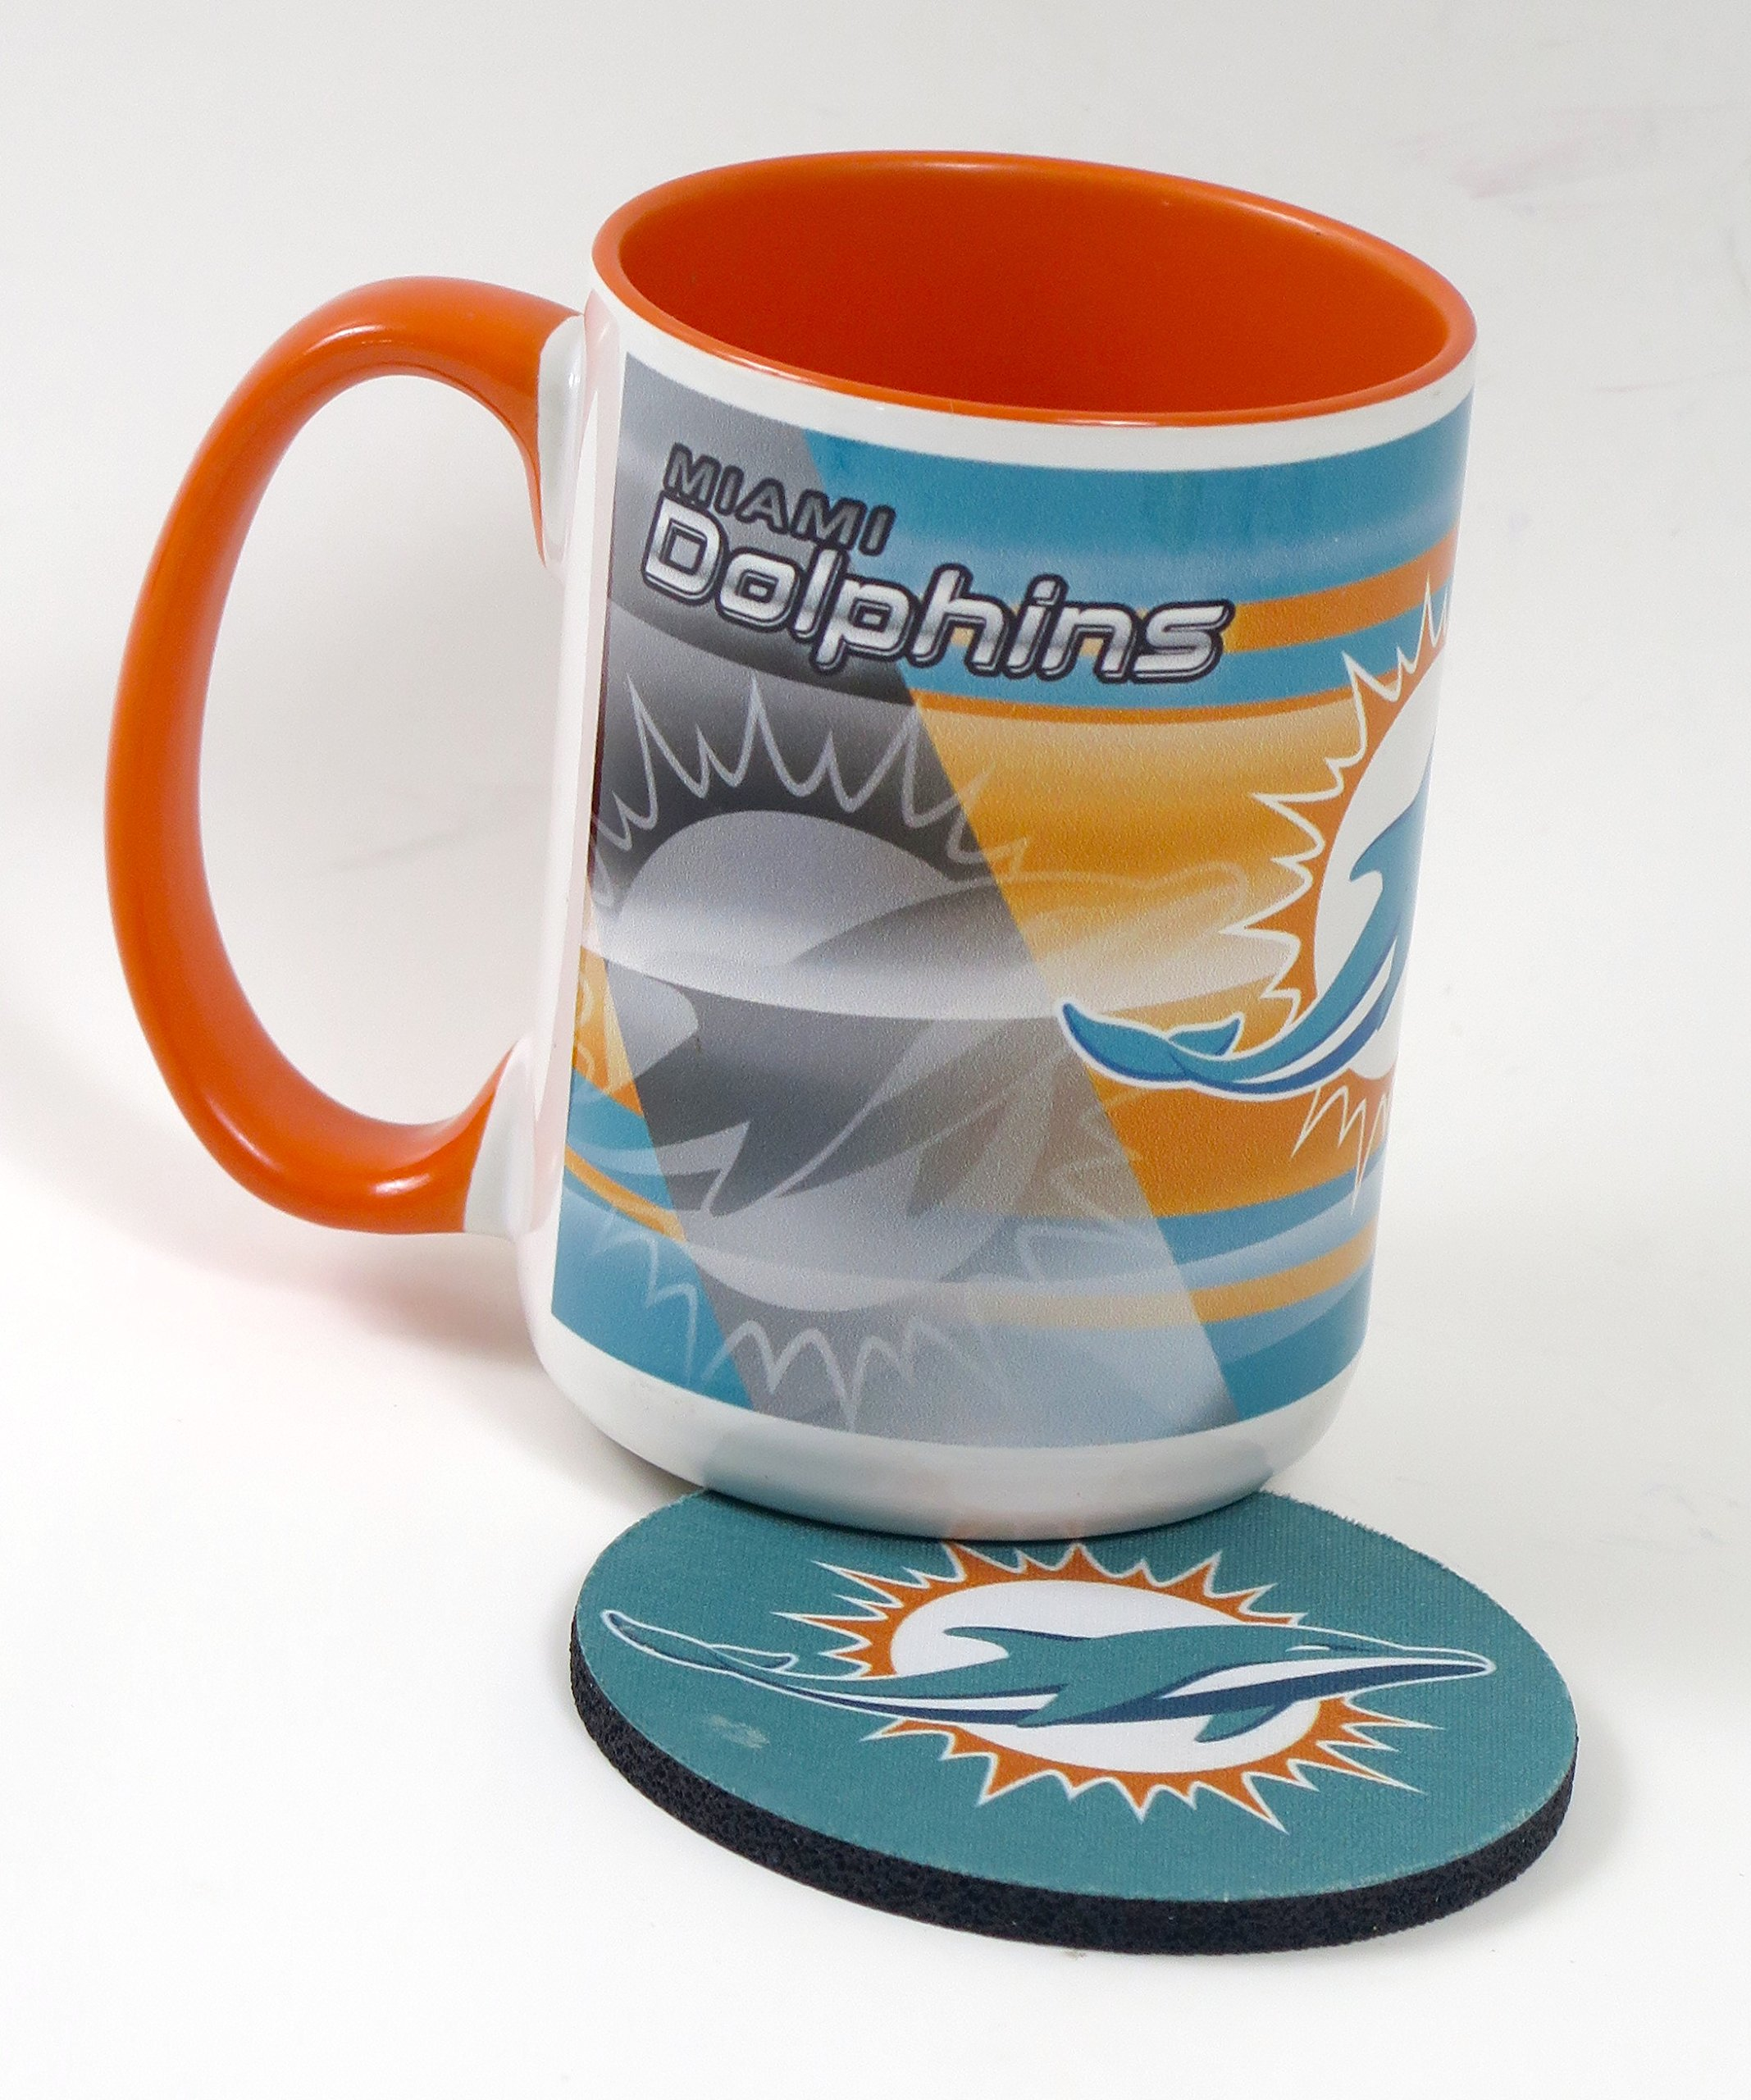 Miami Dolphins Work Station Computer Set. Includes Large Coffee Mug, Neoprene Mouse pad and Coaster, Retractable Pen and a 1000 Sheet Notepad Cube. 5 Peace Set by T (Image #4)